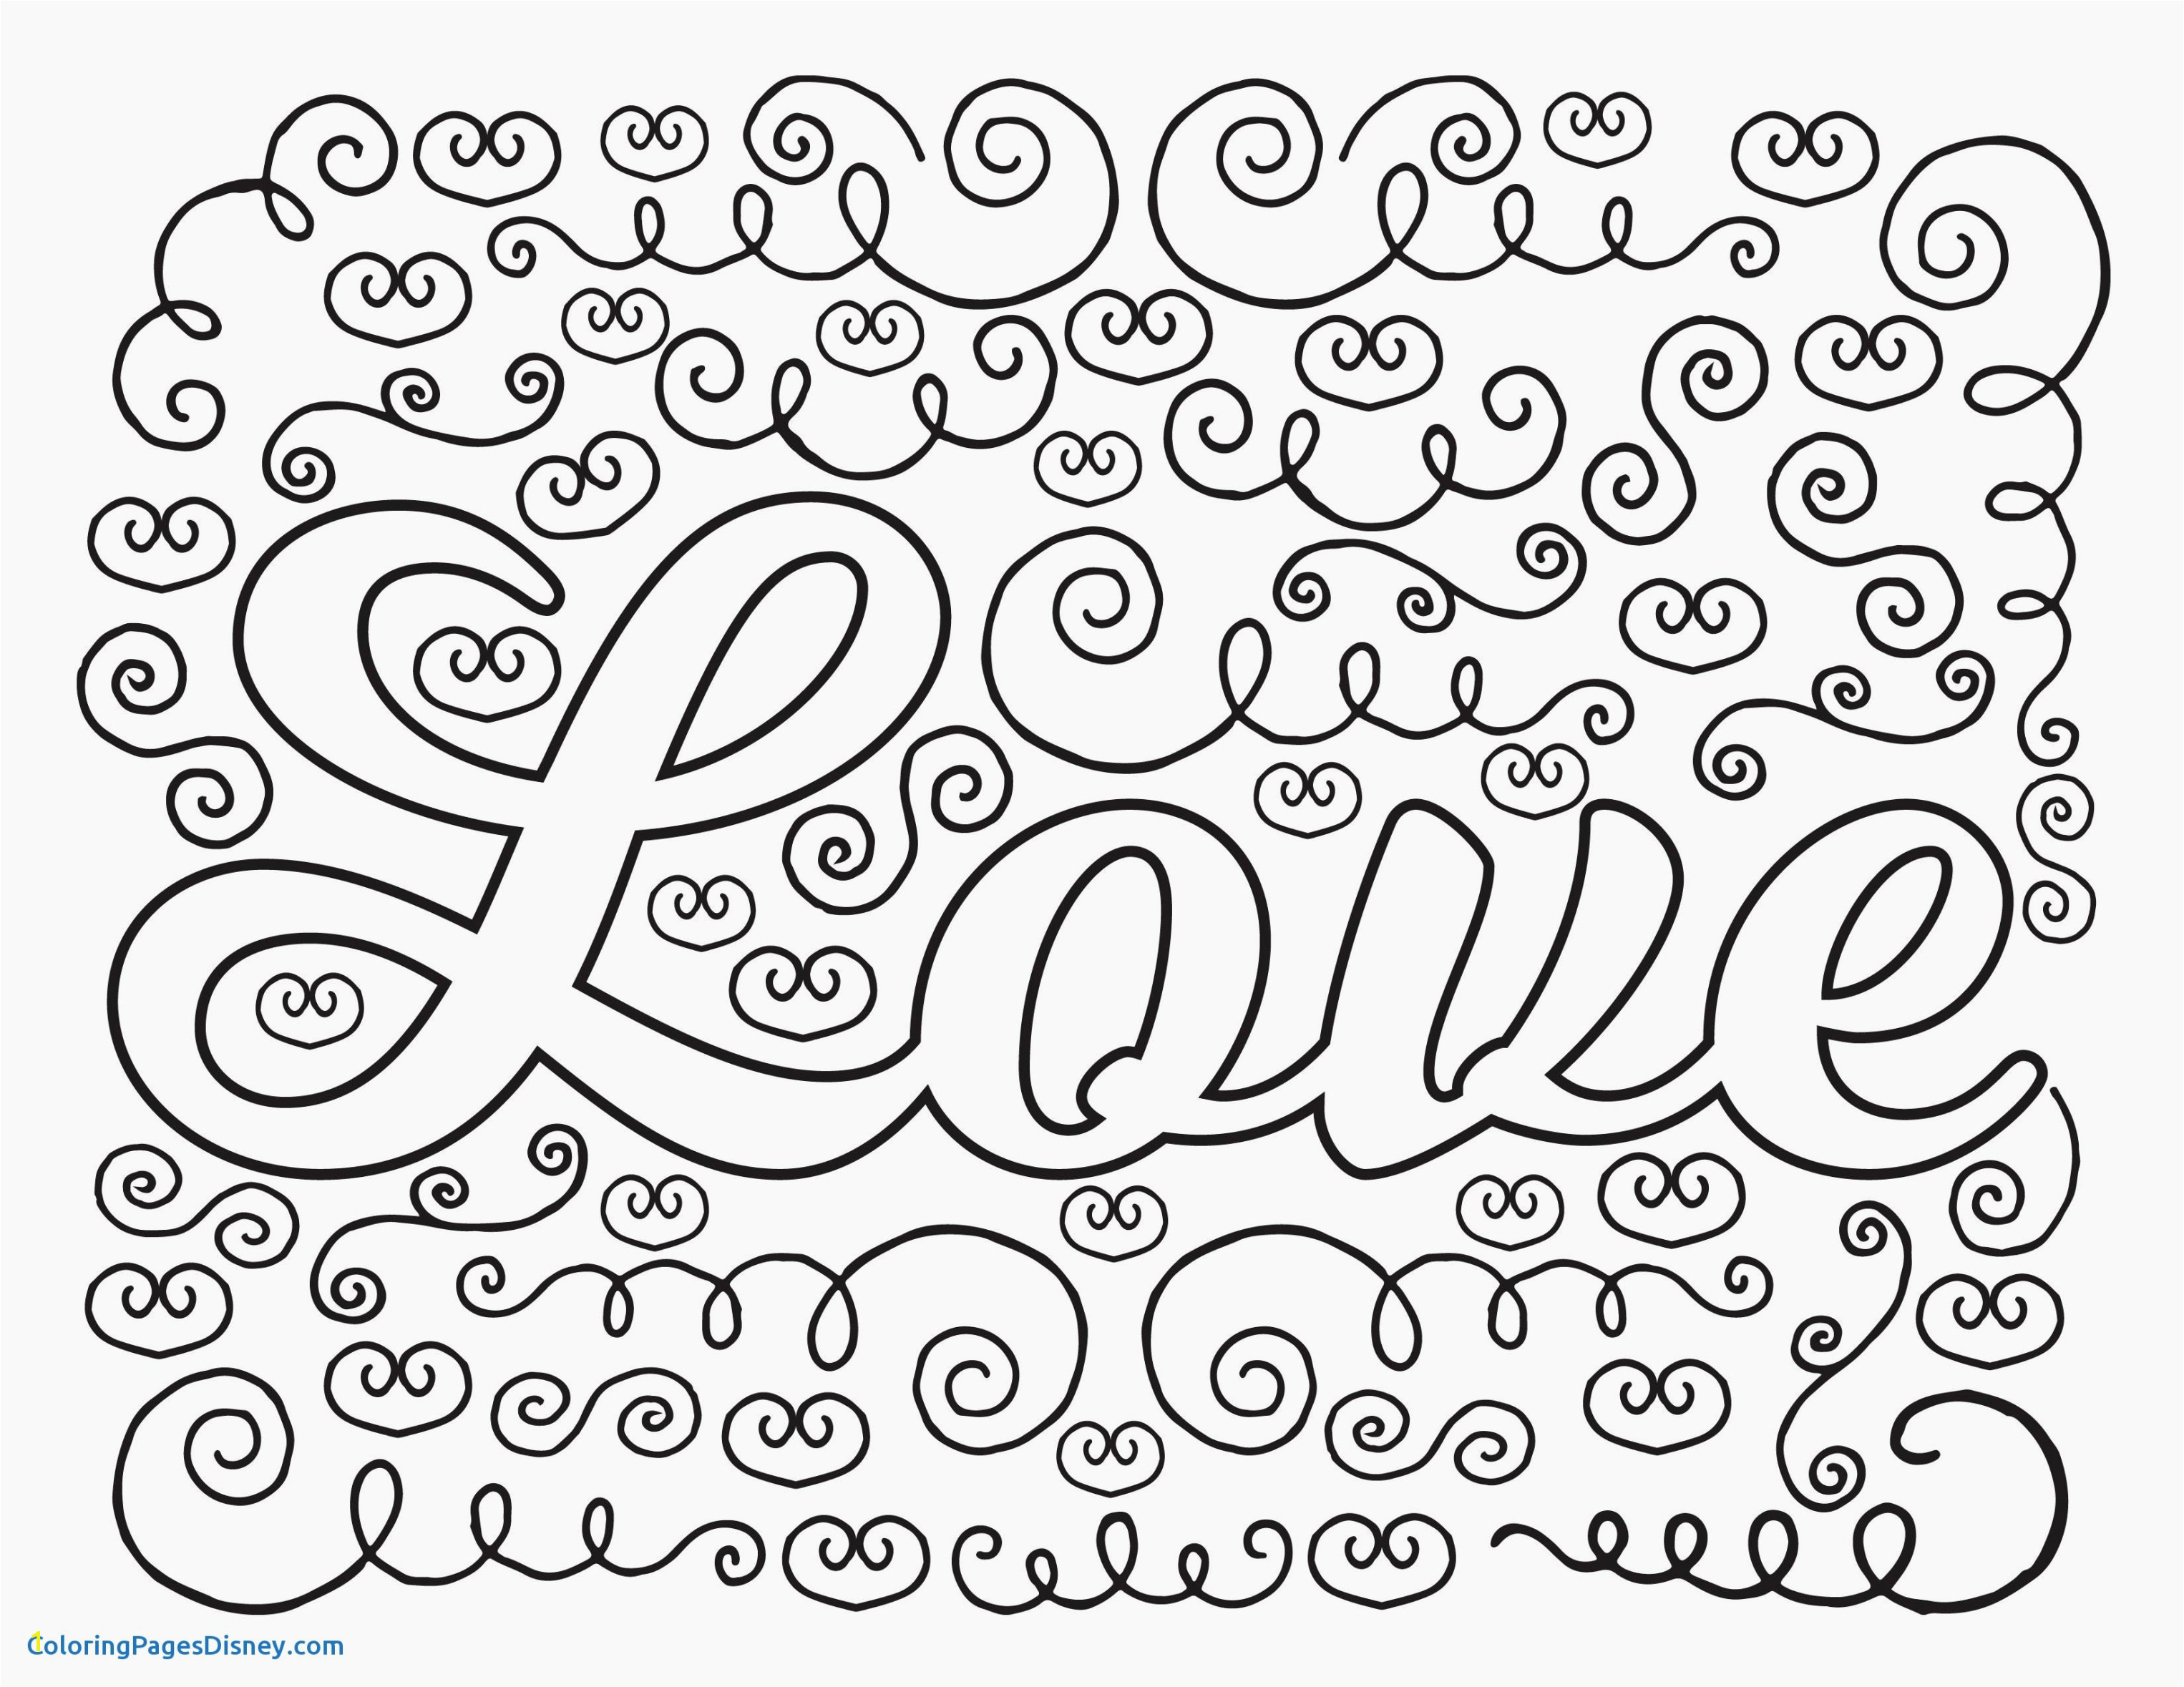 Olaf Coloring Pages 0d · Coloring Pages Printable Unique Printable Free Printable Christmas Coloring Pages